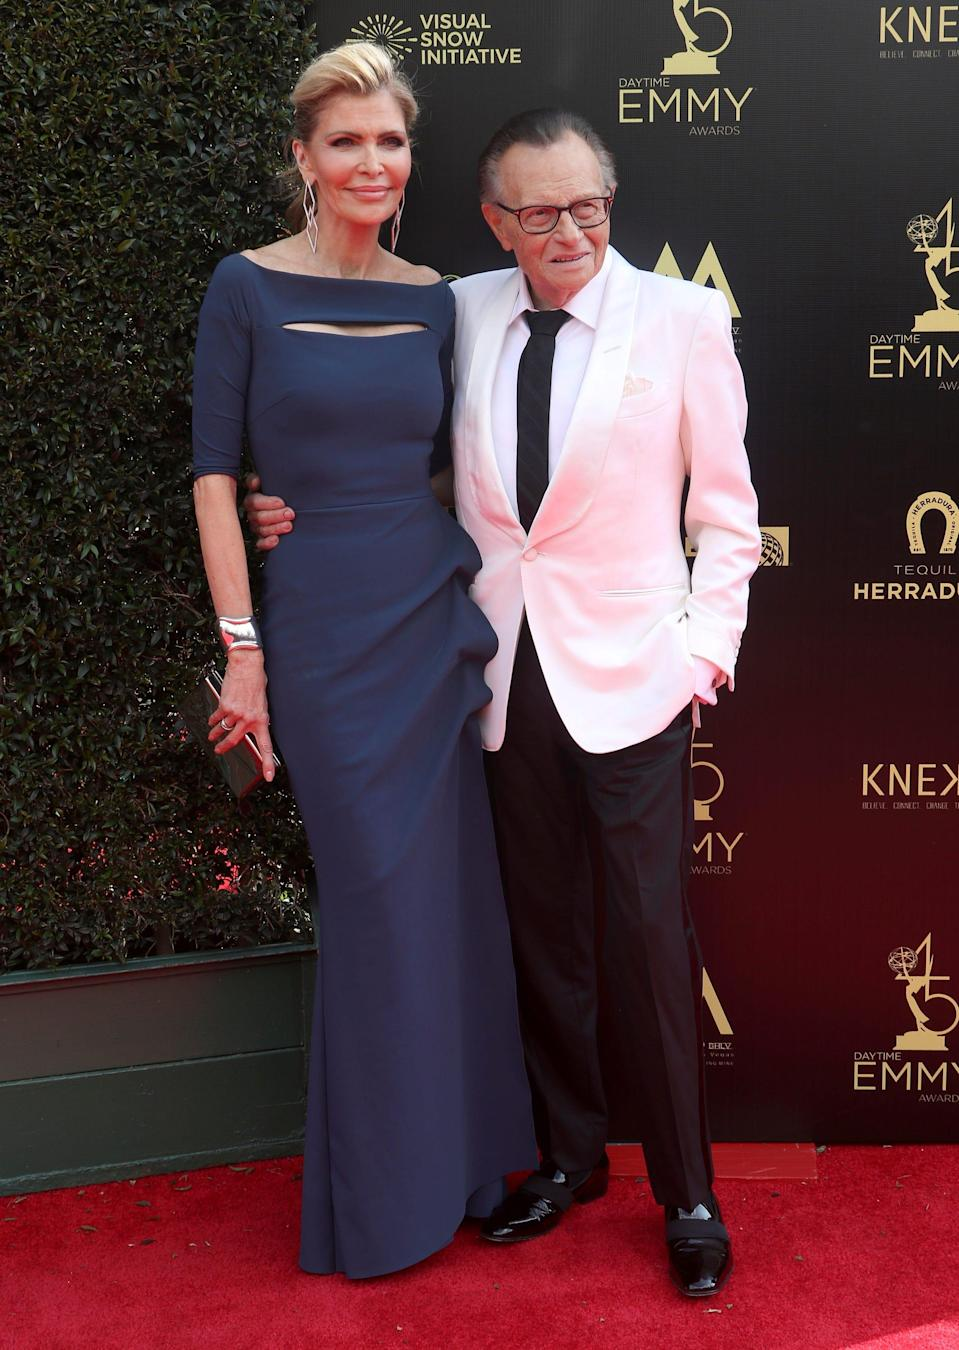 Shawn King and Larry King at the Daytime Emmy Awards in April 2018.